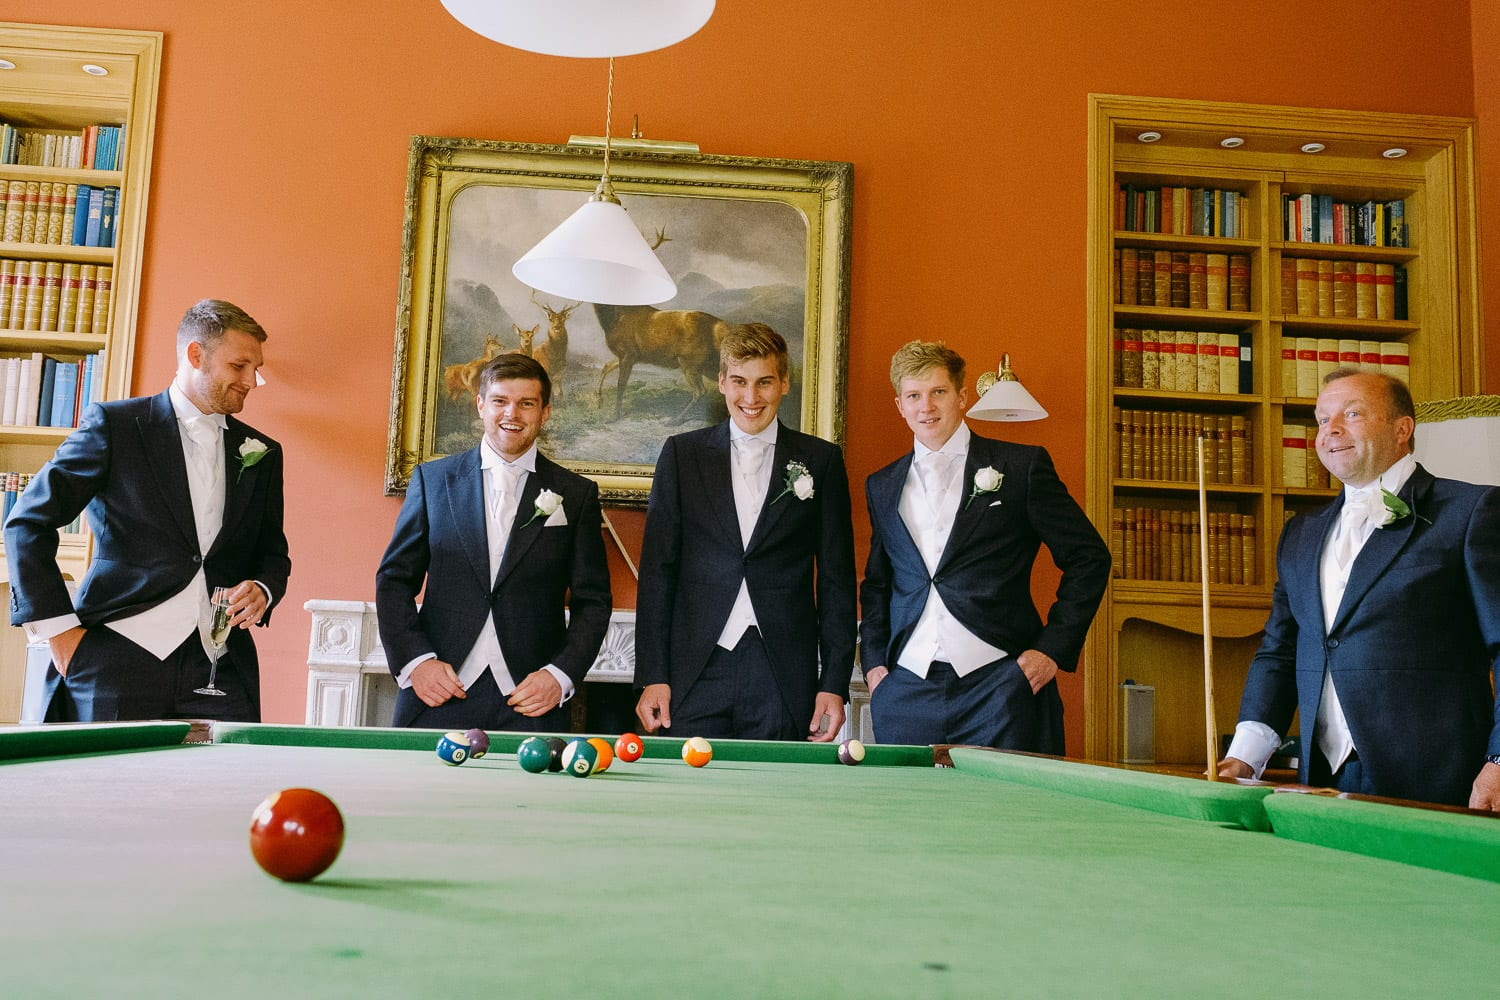 the groomsmen playing snooker